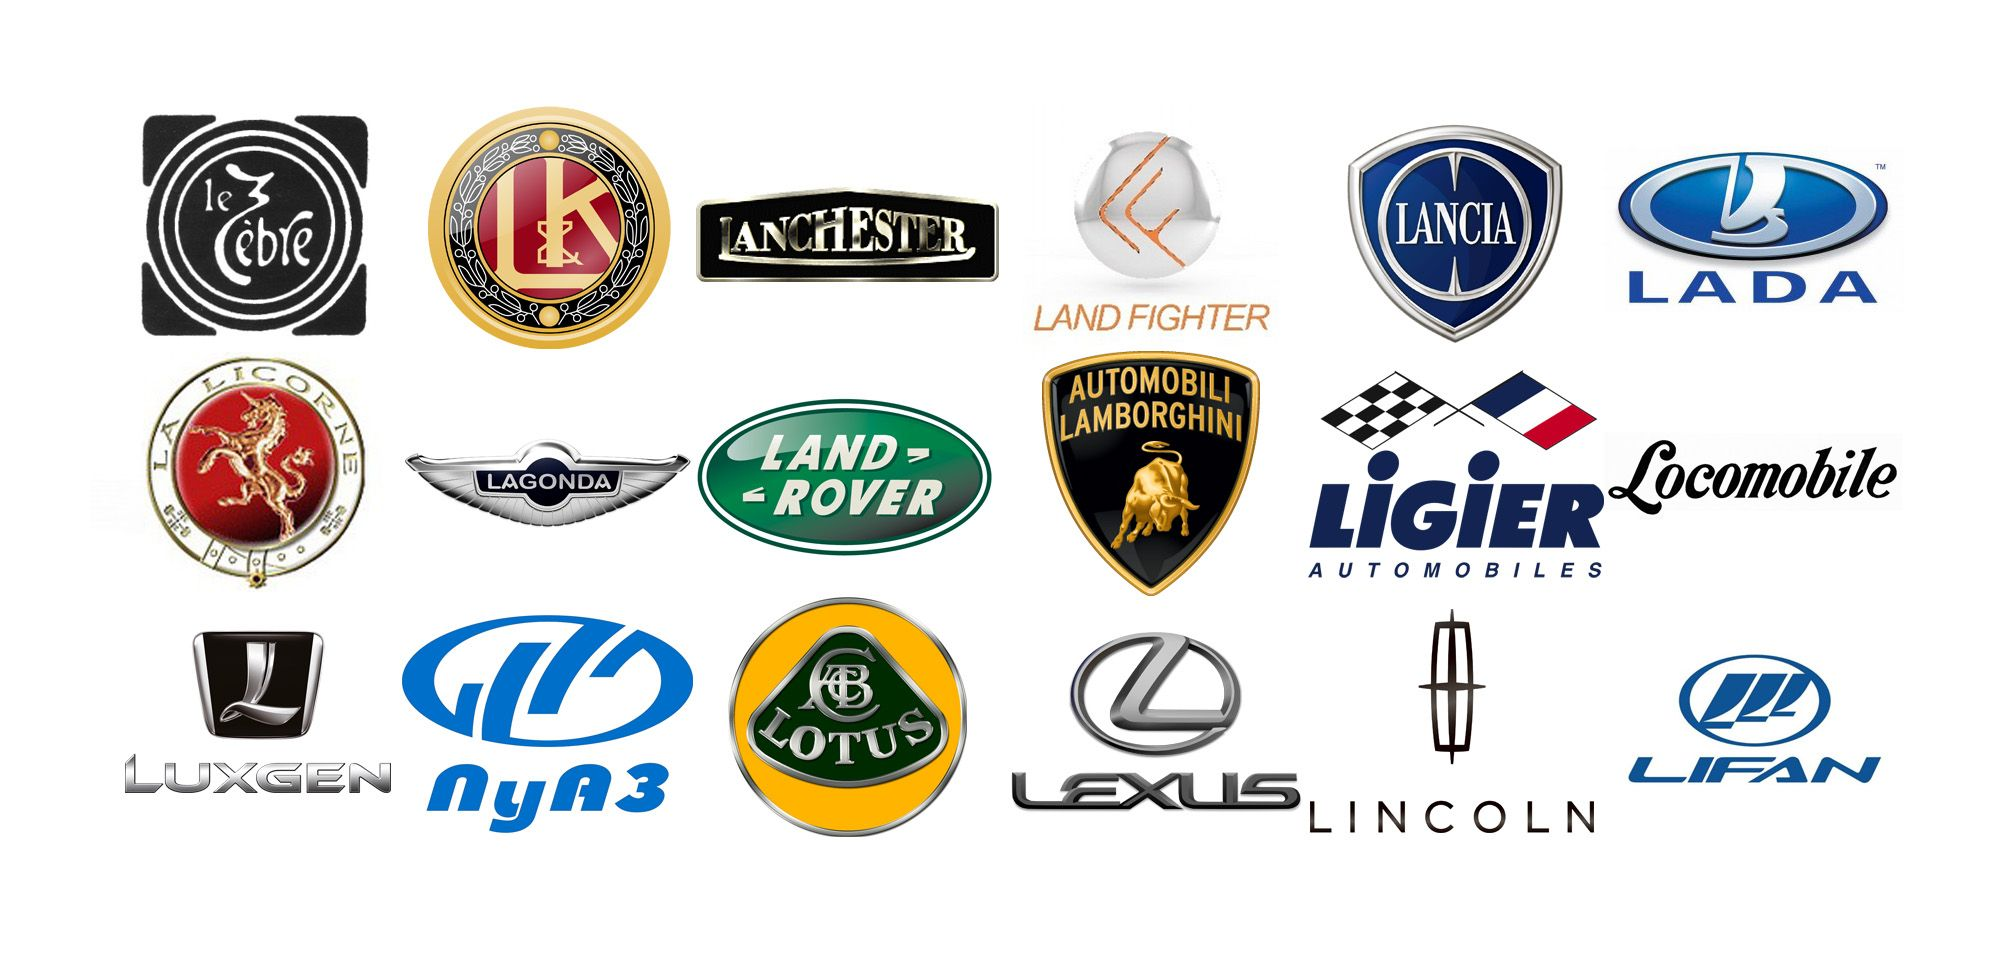 Car Brands Starting With T >> Car Brands Starting With L 492 Car Brands New Used Cars